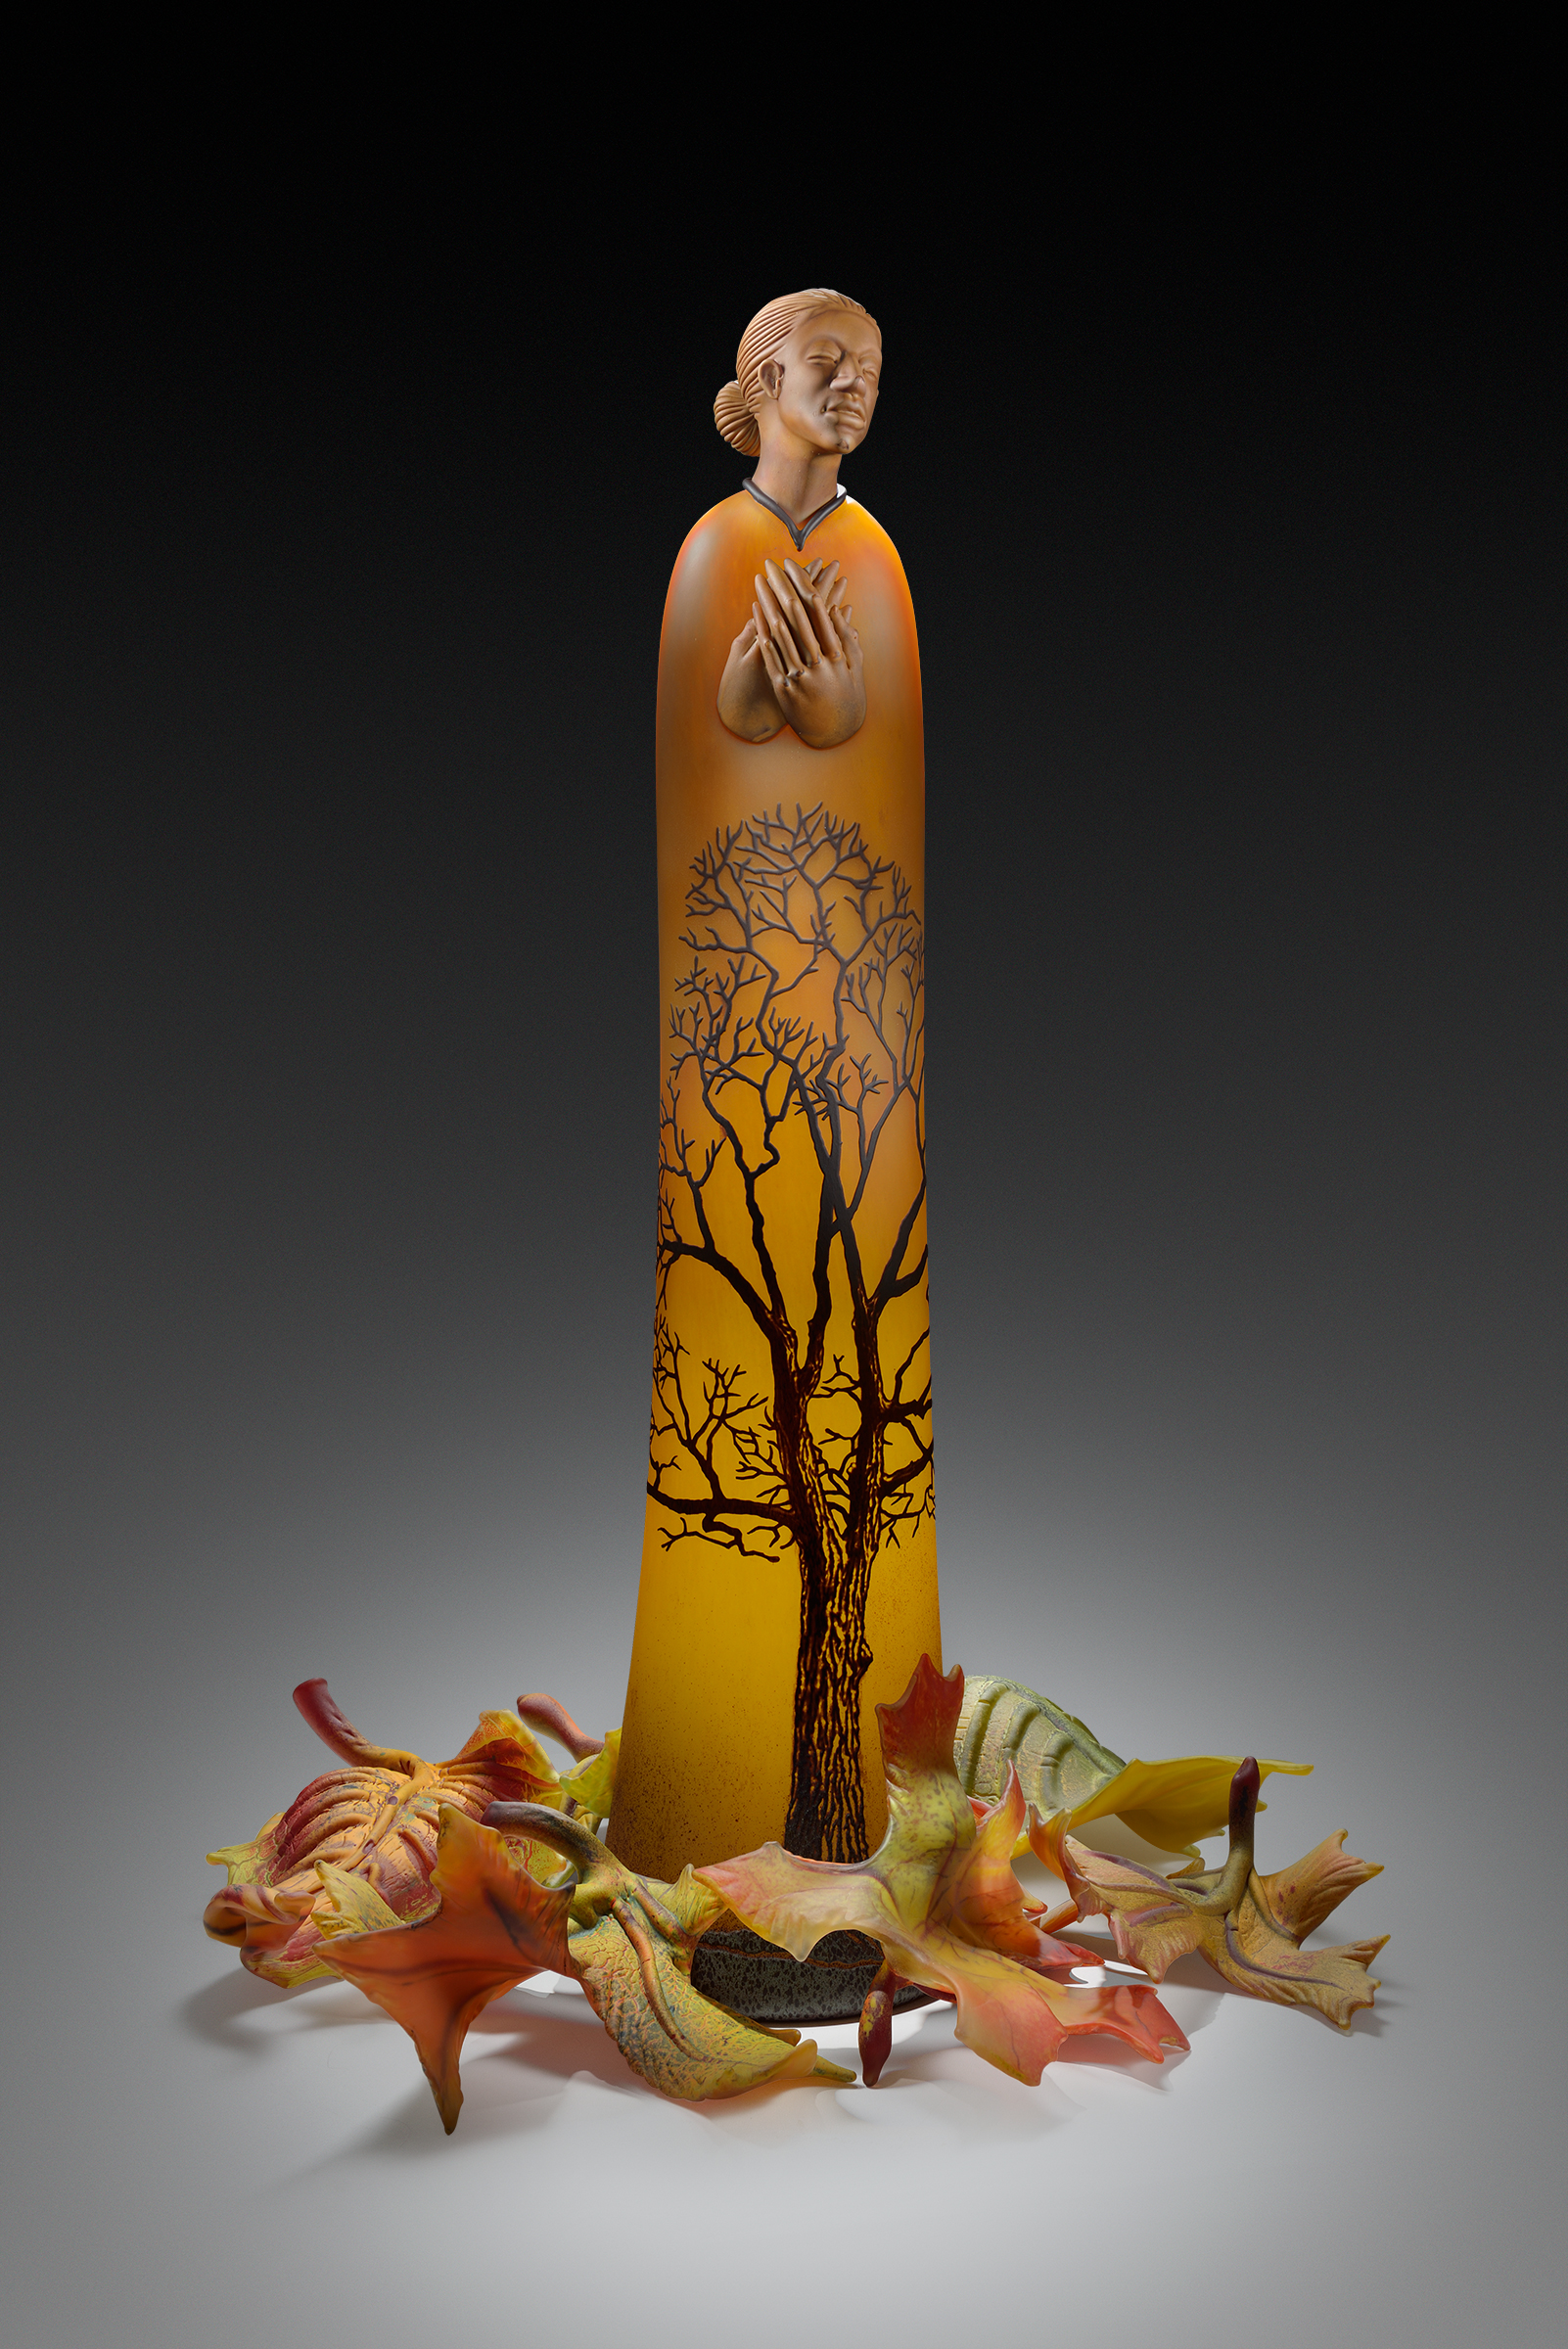 Sculpture collaboration by Ross Richmond and Randy Walker